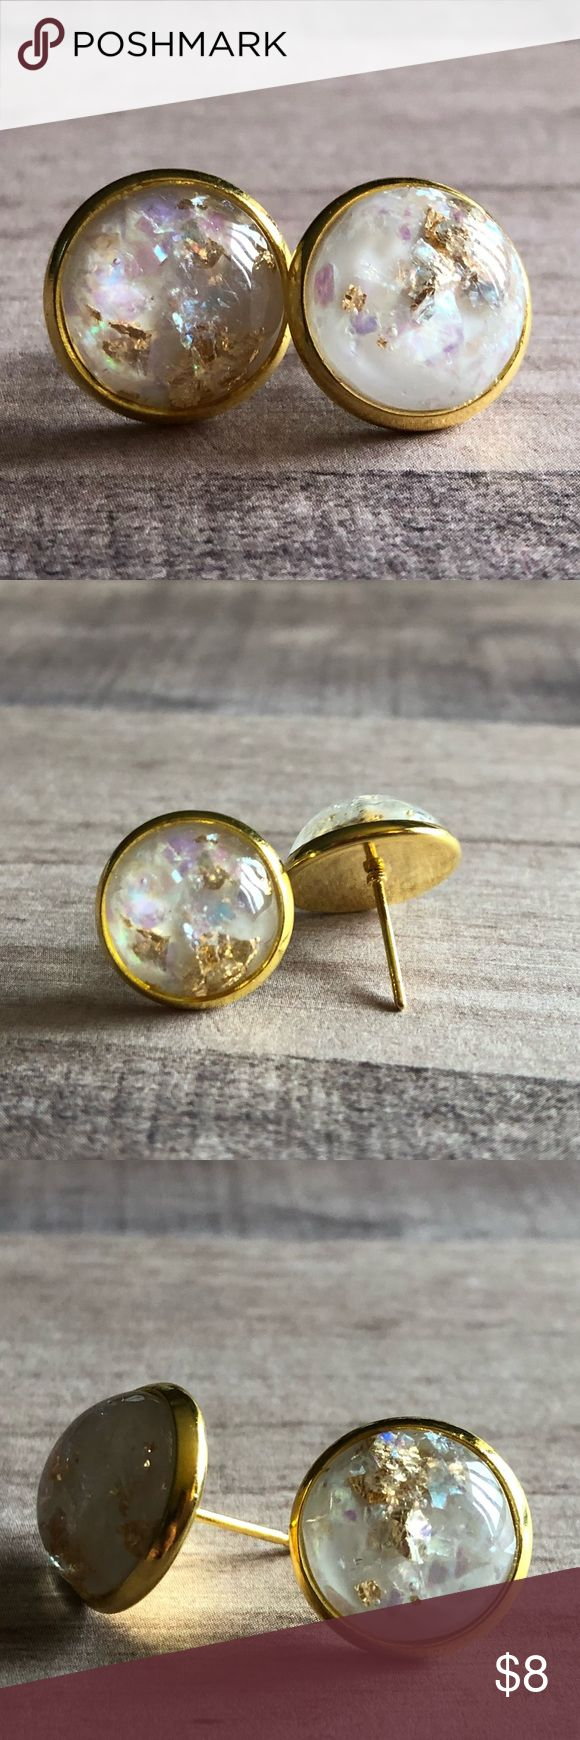 """🆕White Opal Gold Metal Stone Stud Earrings! New, Handmade by Me! 🆕Style! Opal Stone mixed with Gold Metal! Listing in White, Black & Dark Blue; This listing is for the White Stone in Gold Post Backs; Approx. 12mm or 1/2"""" Size; Can make in any Style Back Shown!📸These are my pic's of the Actual items!  ▶️1 For $8, 2 For $13, 3 For $15!◀️  ▪️3-$15 is only for items listed as such▪️ ▪️Post Back for Pierced Ears ▪️Nickel, Lead & Cadmium Free  *NO TRADES *Price is FIRM as Listed!  *Sales are…"""